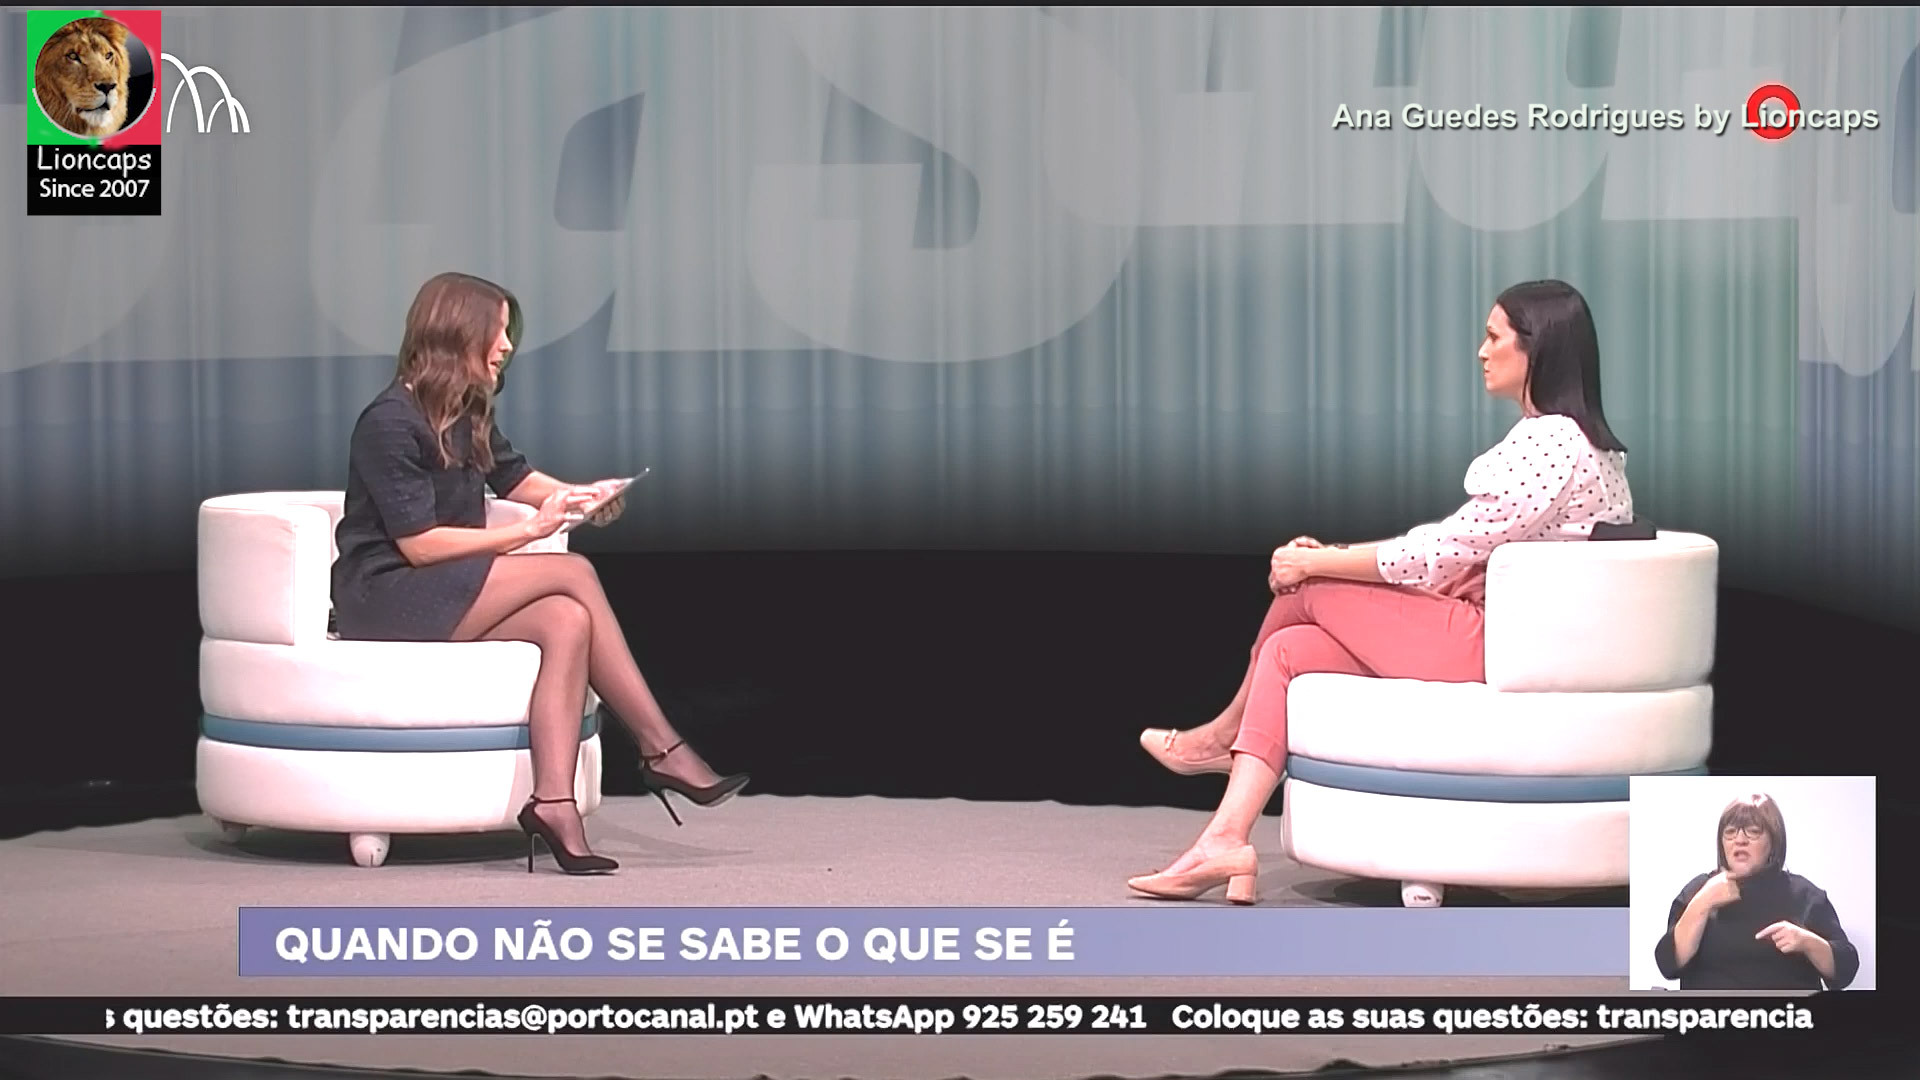 ana_guedes_rodrigues_lioncaps_15_08_2021 (13).jpg